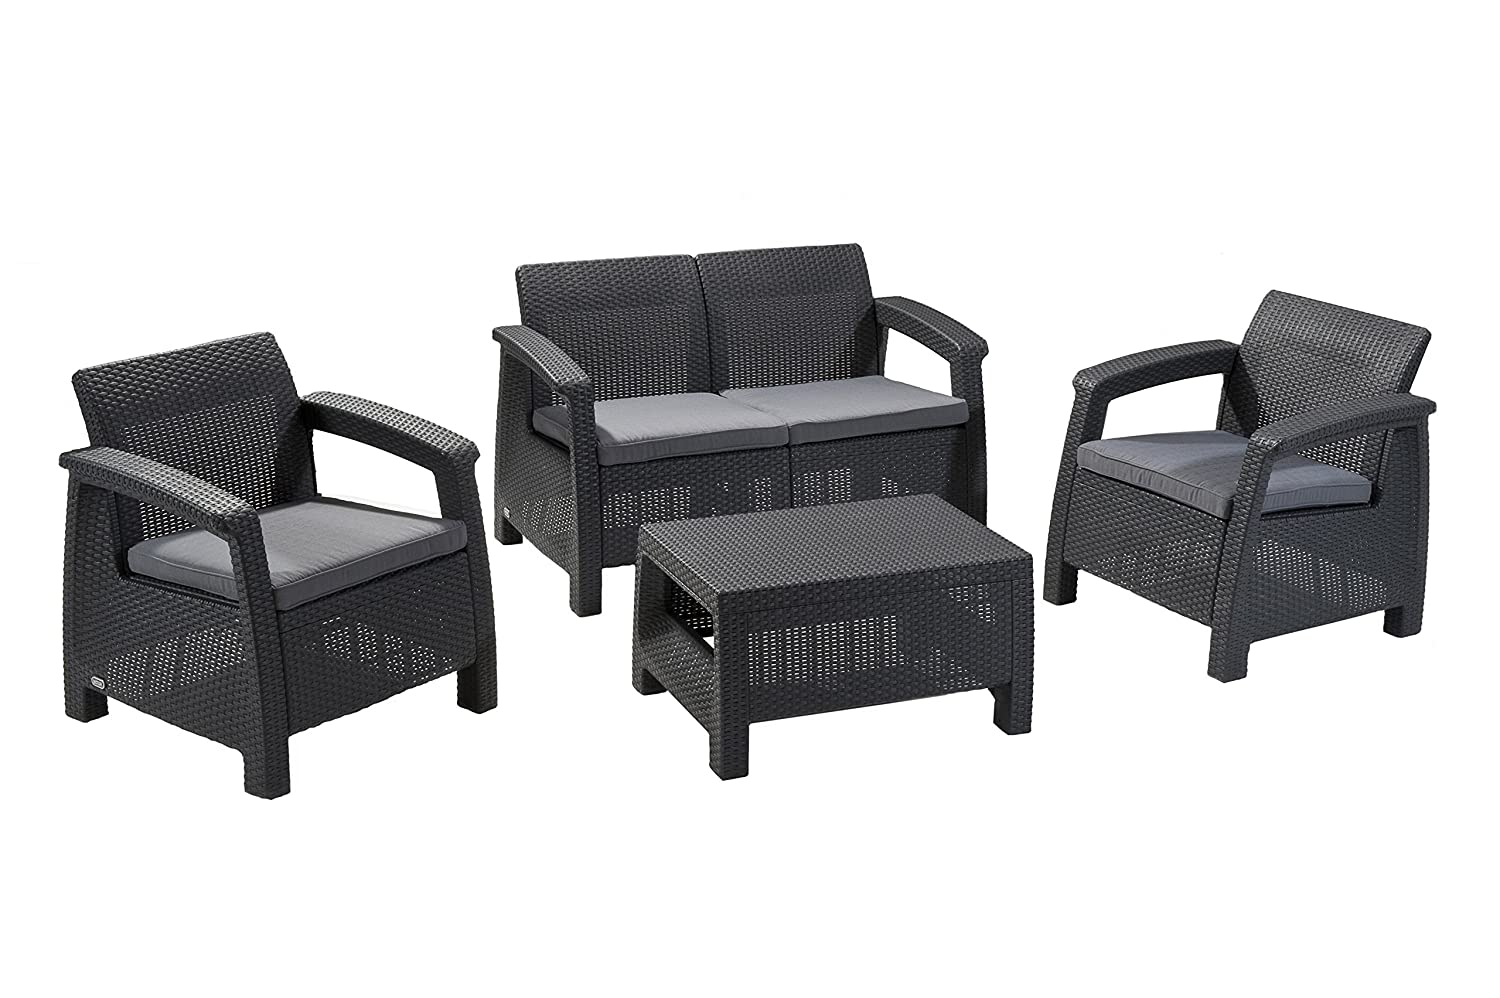 Best Garden Furniture Sets Reviews and Buying Guide 2018 1